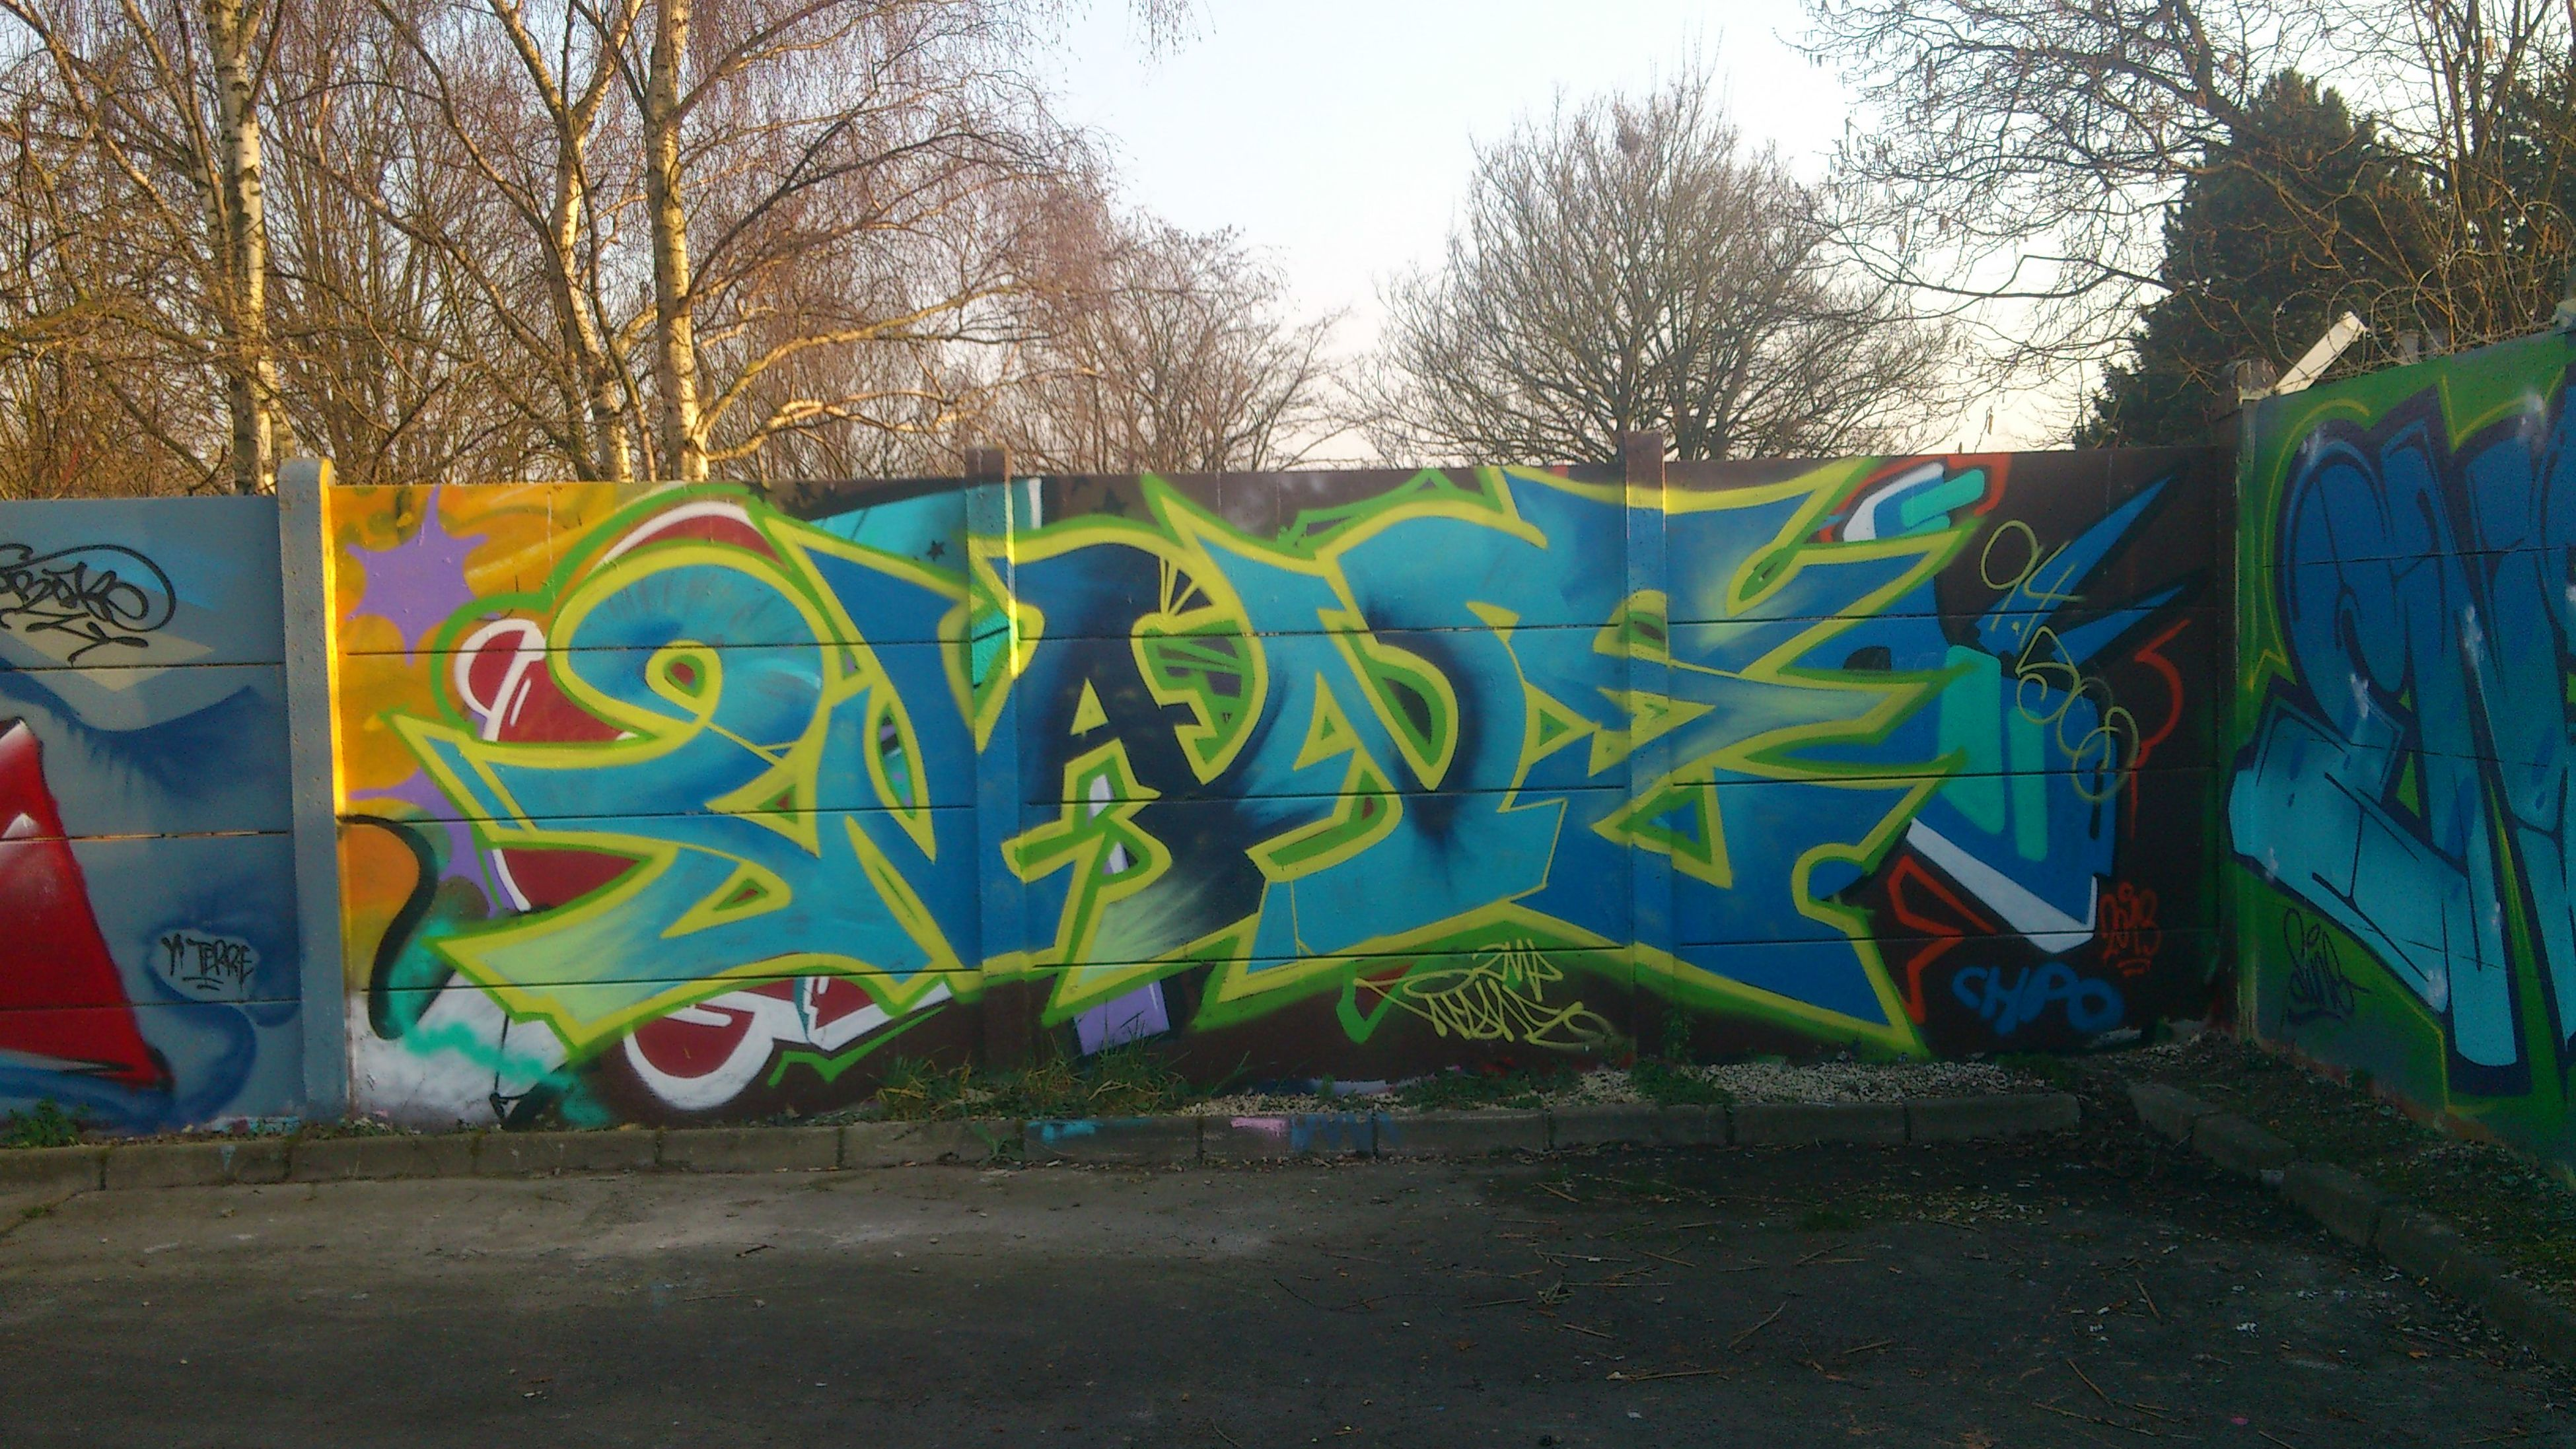 graffiti, art, creativity, art and craft, text, wall - building feature, street art, multi colored, built structure, architecture, western script, tree, day, wall, outdoors, communication, no people, vandalism, building exterior, animal representation